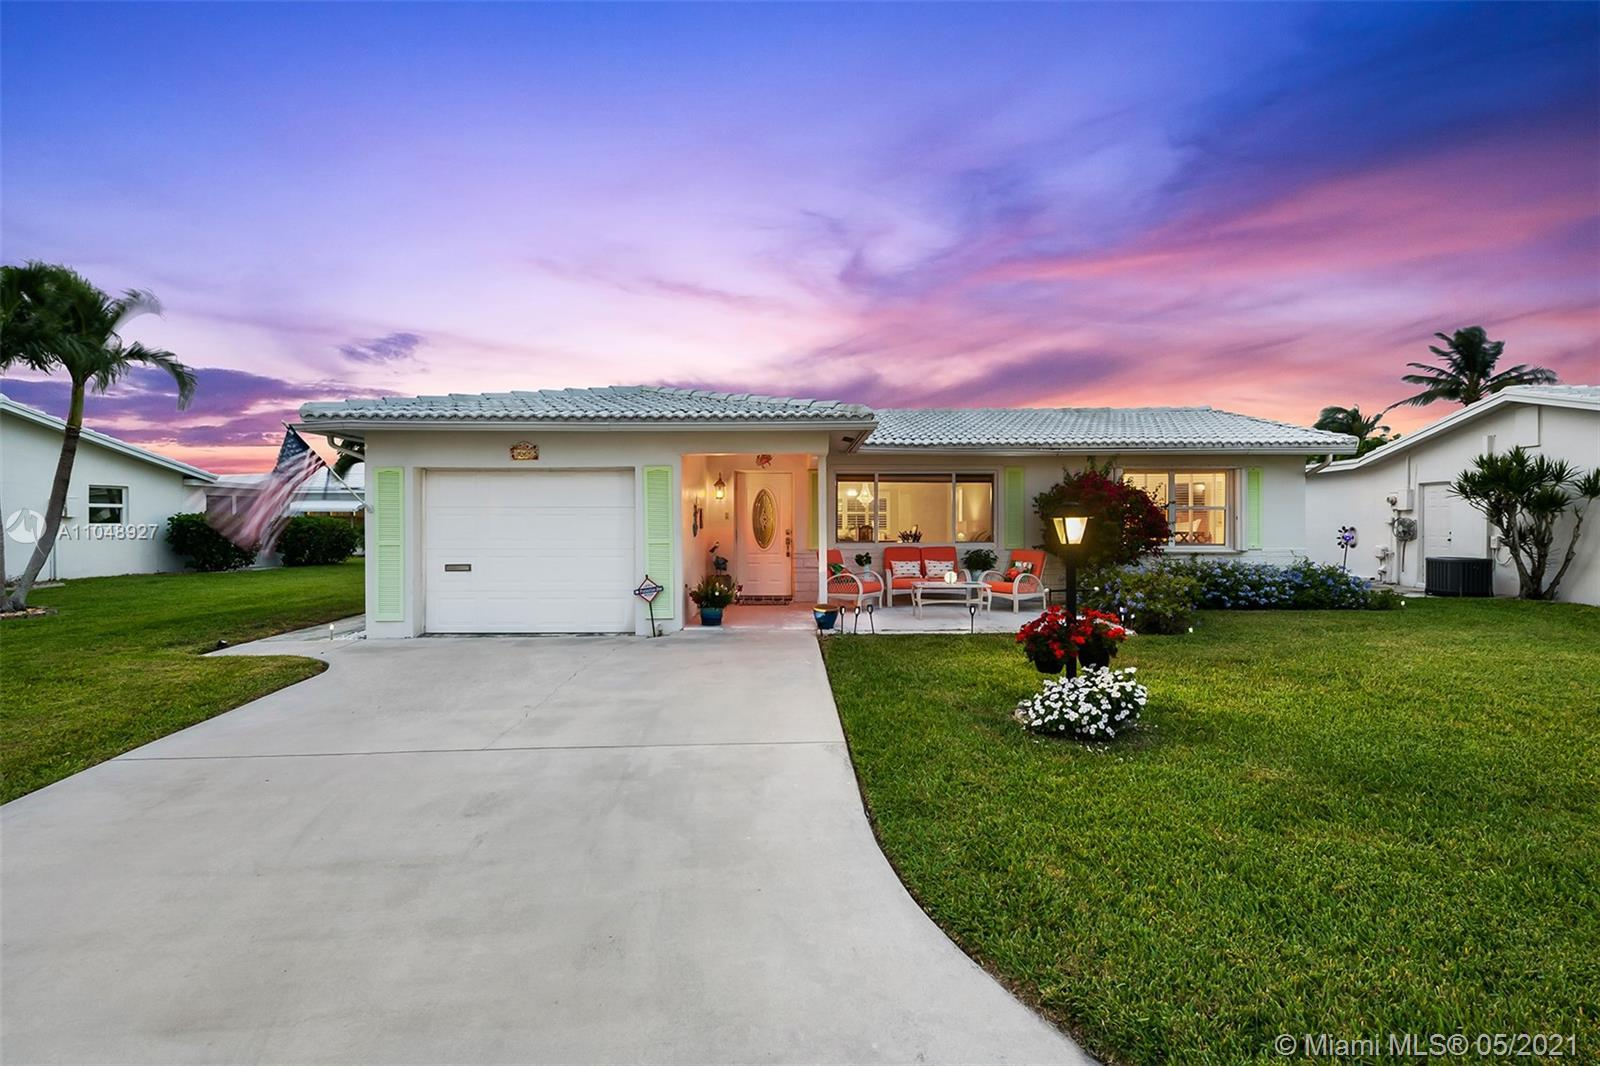 Welcome Home to this gorgeous 3 bedroom, 2 bathroom residence located on an oversized lot with beaut